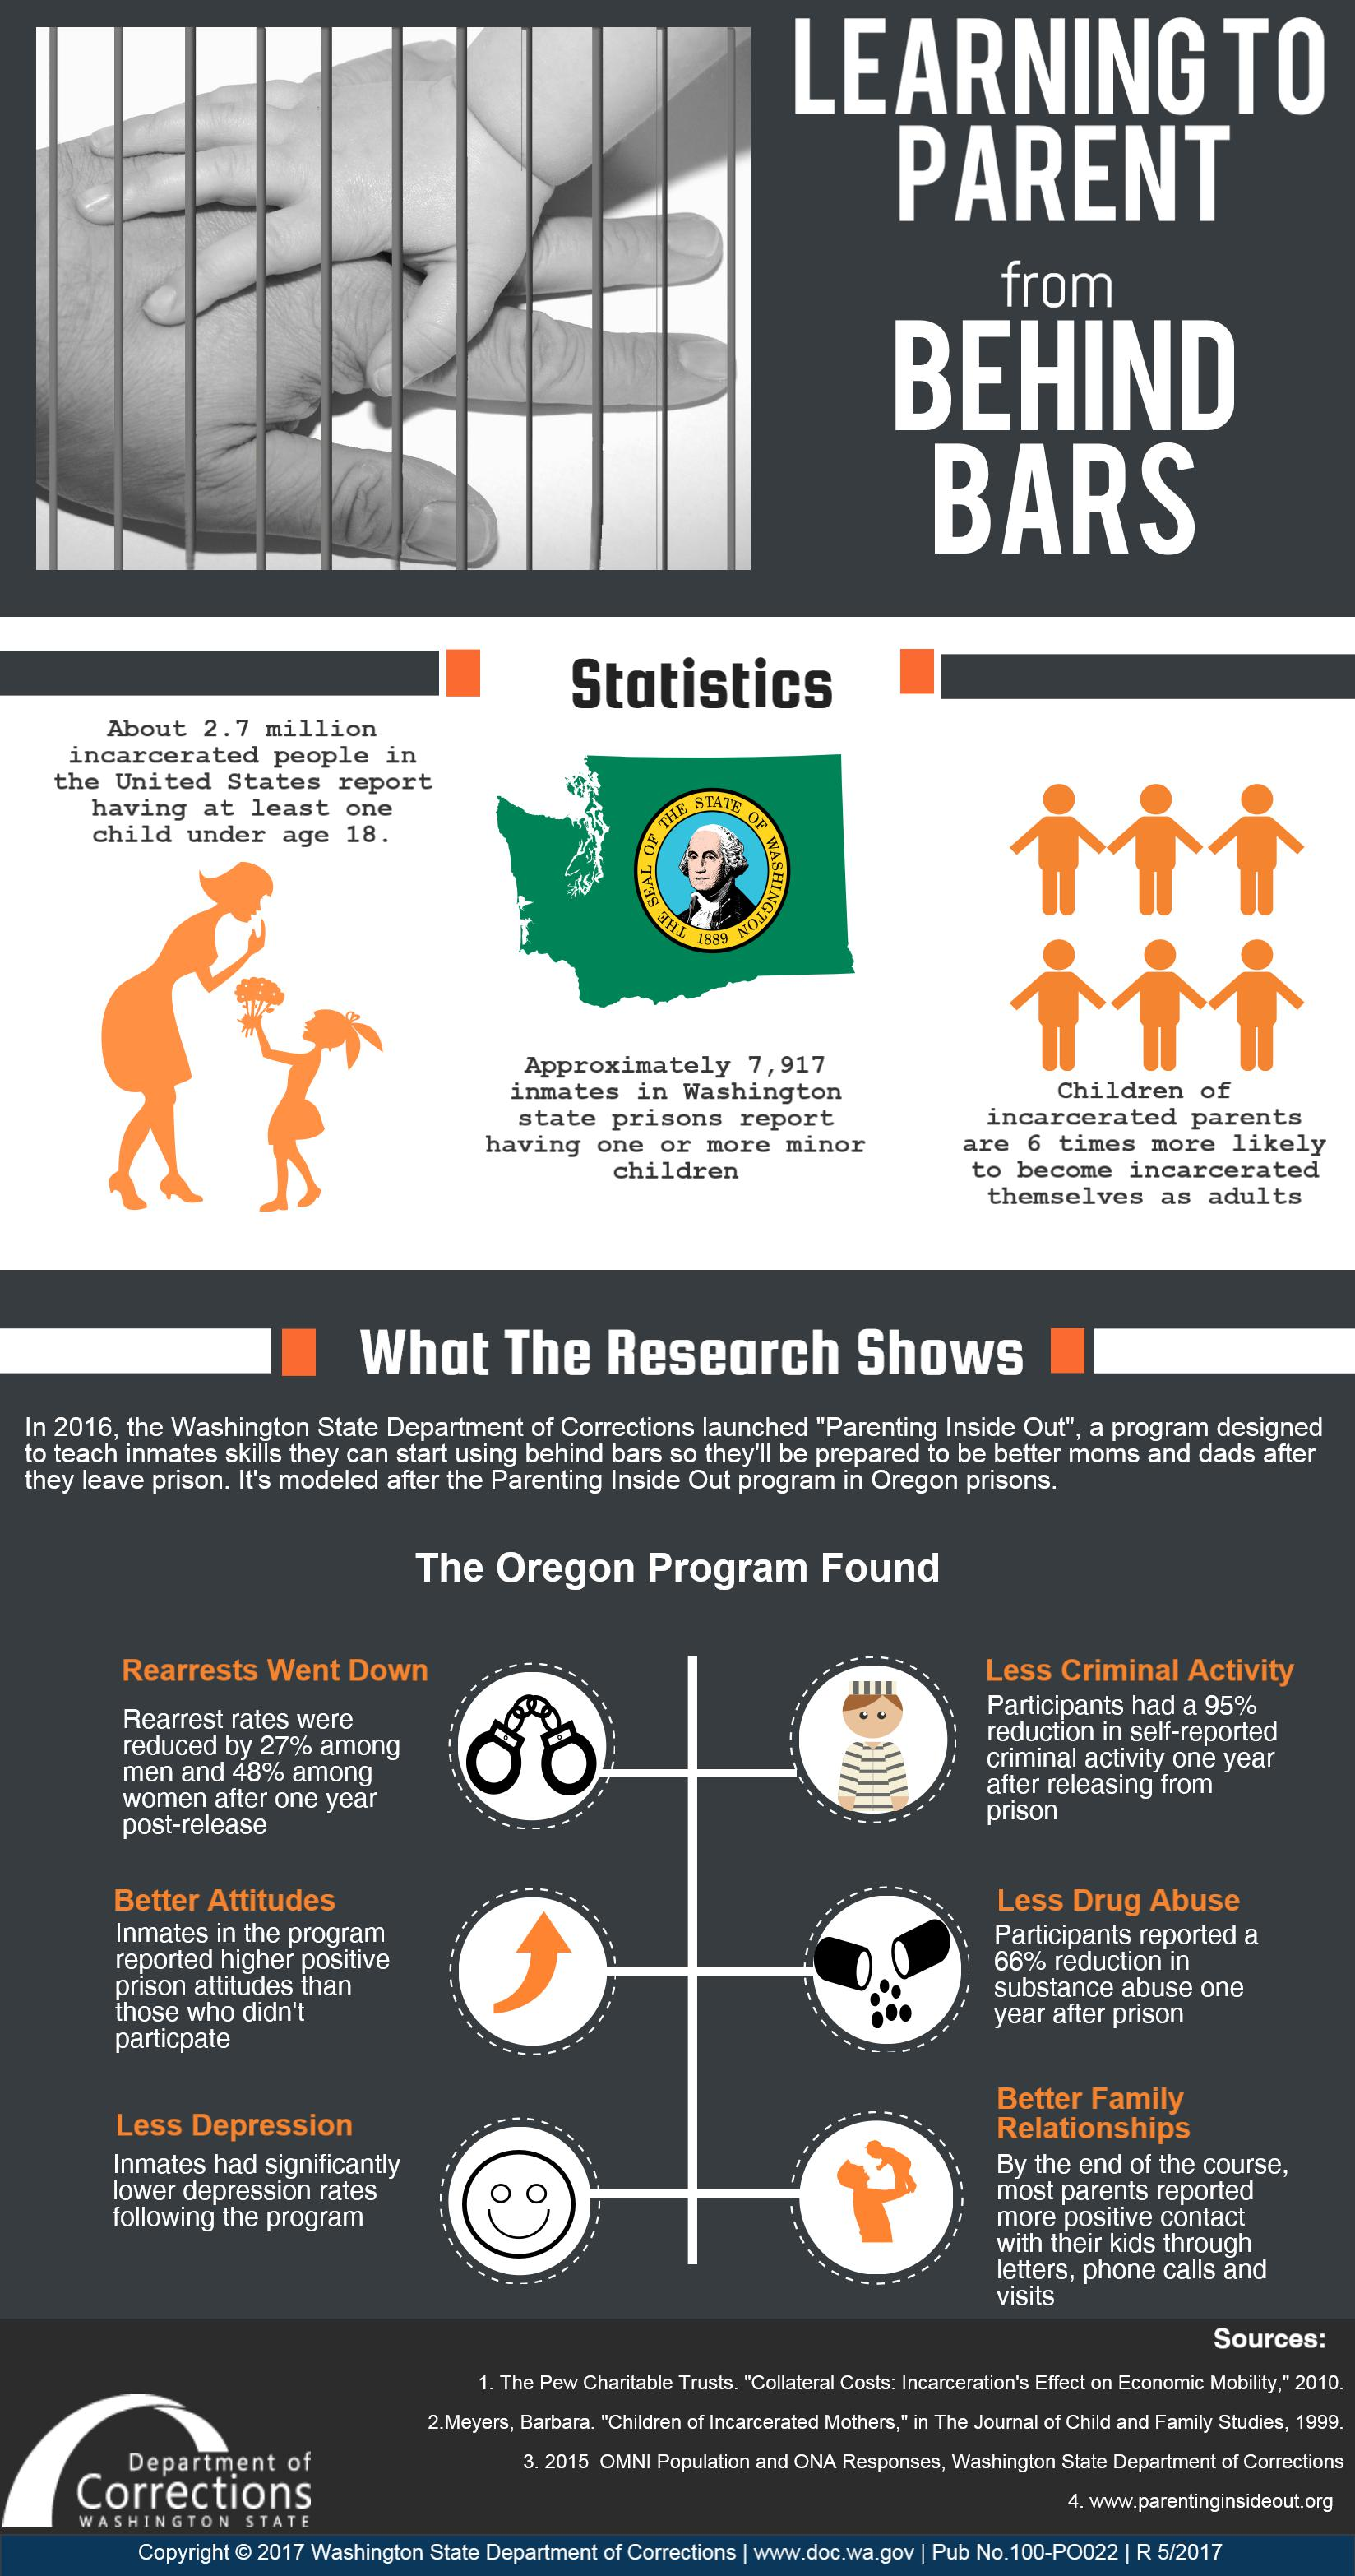 Learning Behind Bars >> Infographic Learning To Parent From Behind Bars Washington State